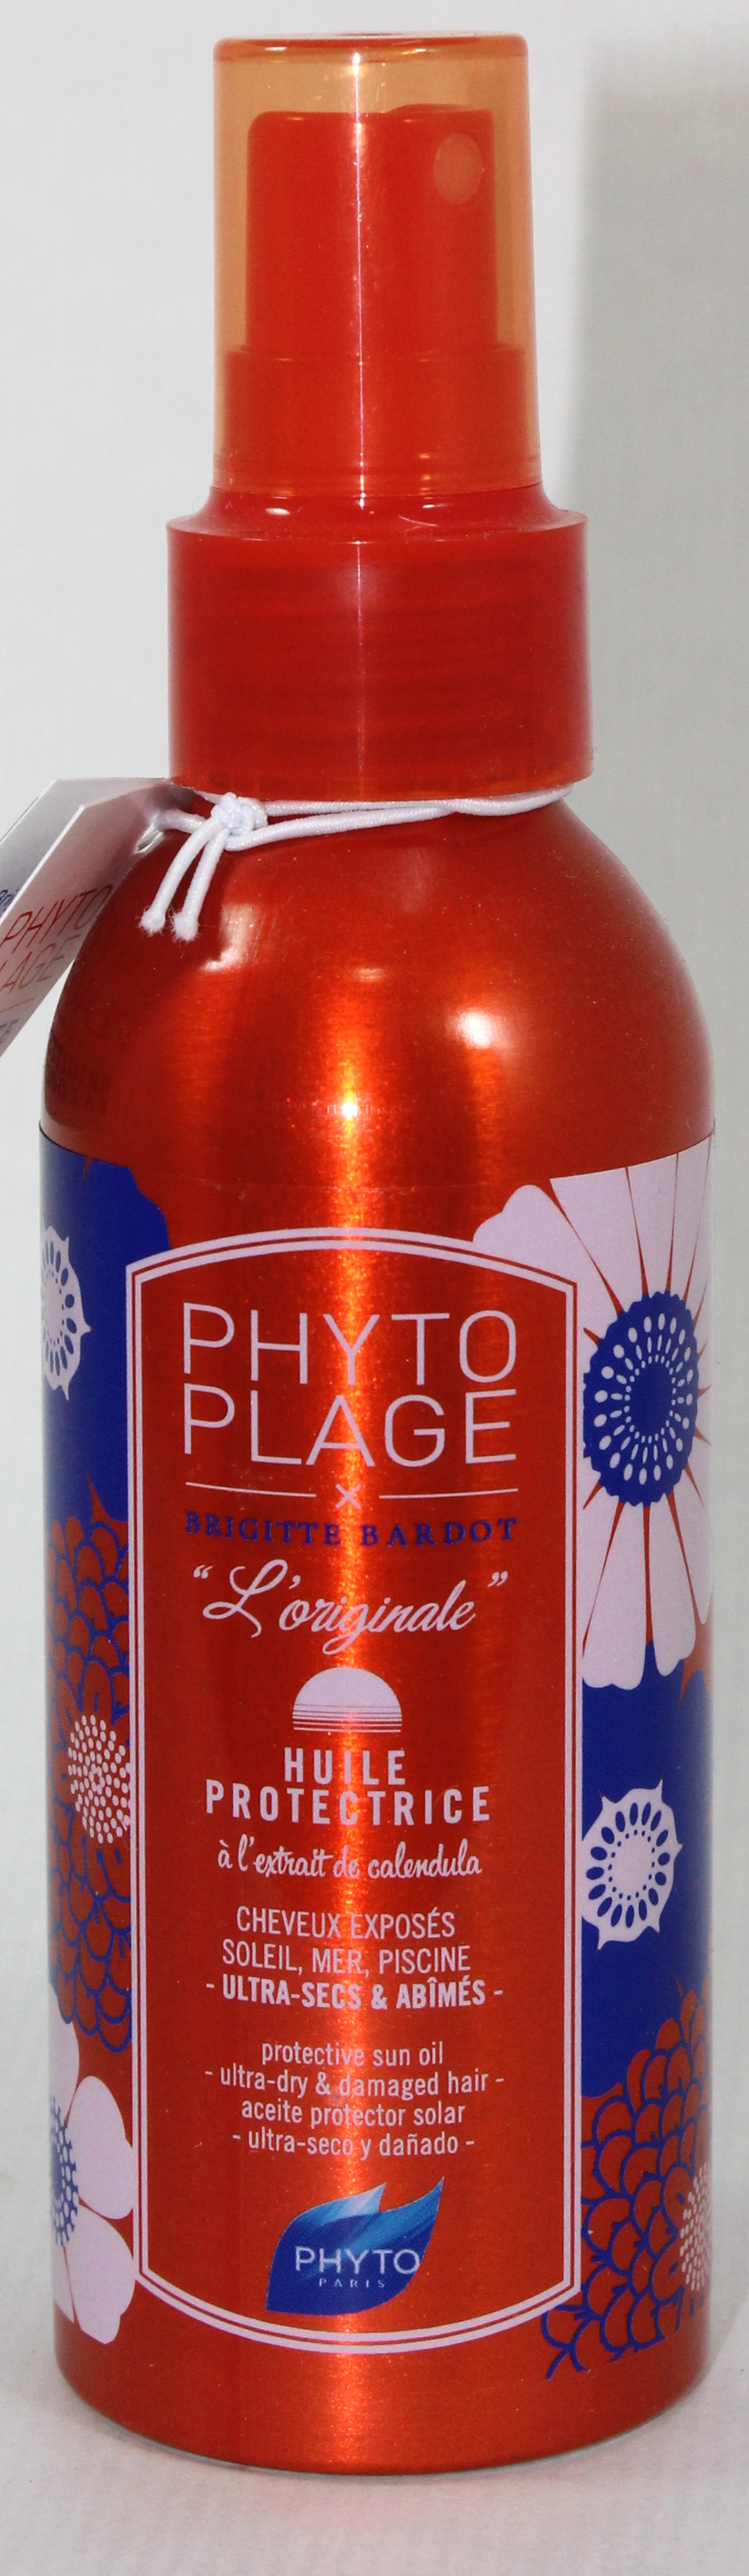 PHYTOPLAGE ACEITE PROTECTOR 100 ML